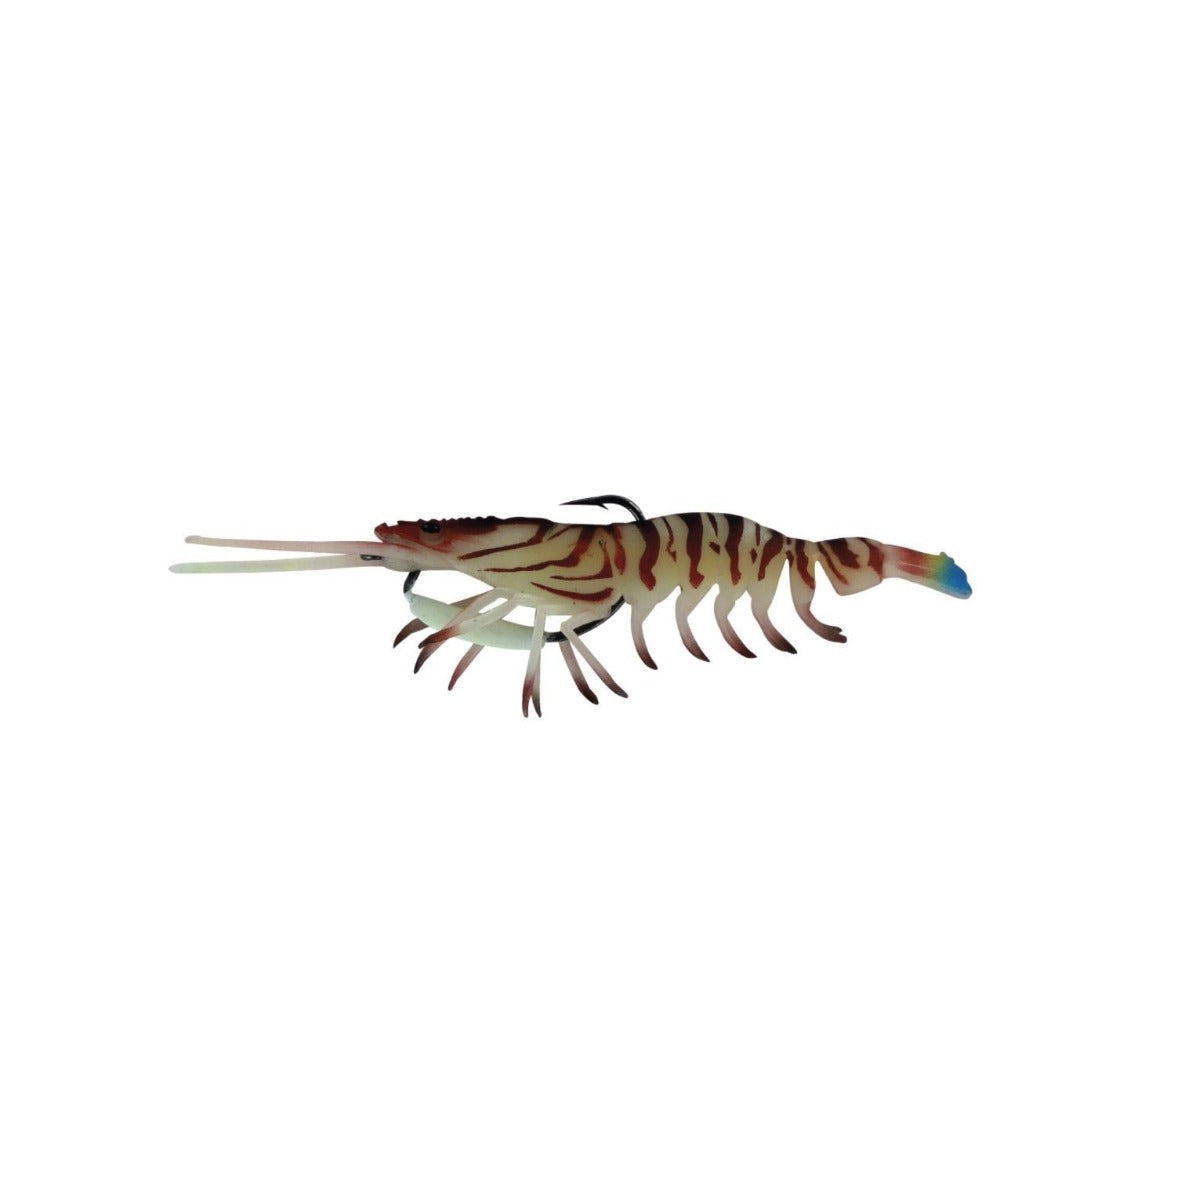 Chasebaits Flick Prawn 125mm Soft Plastic Lure